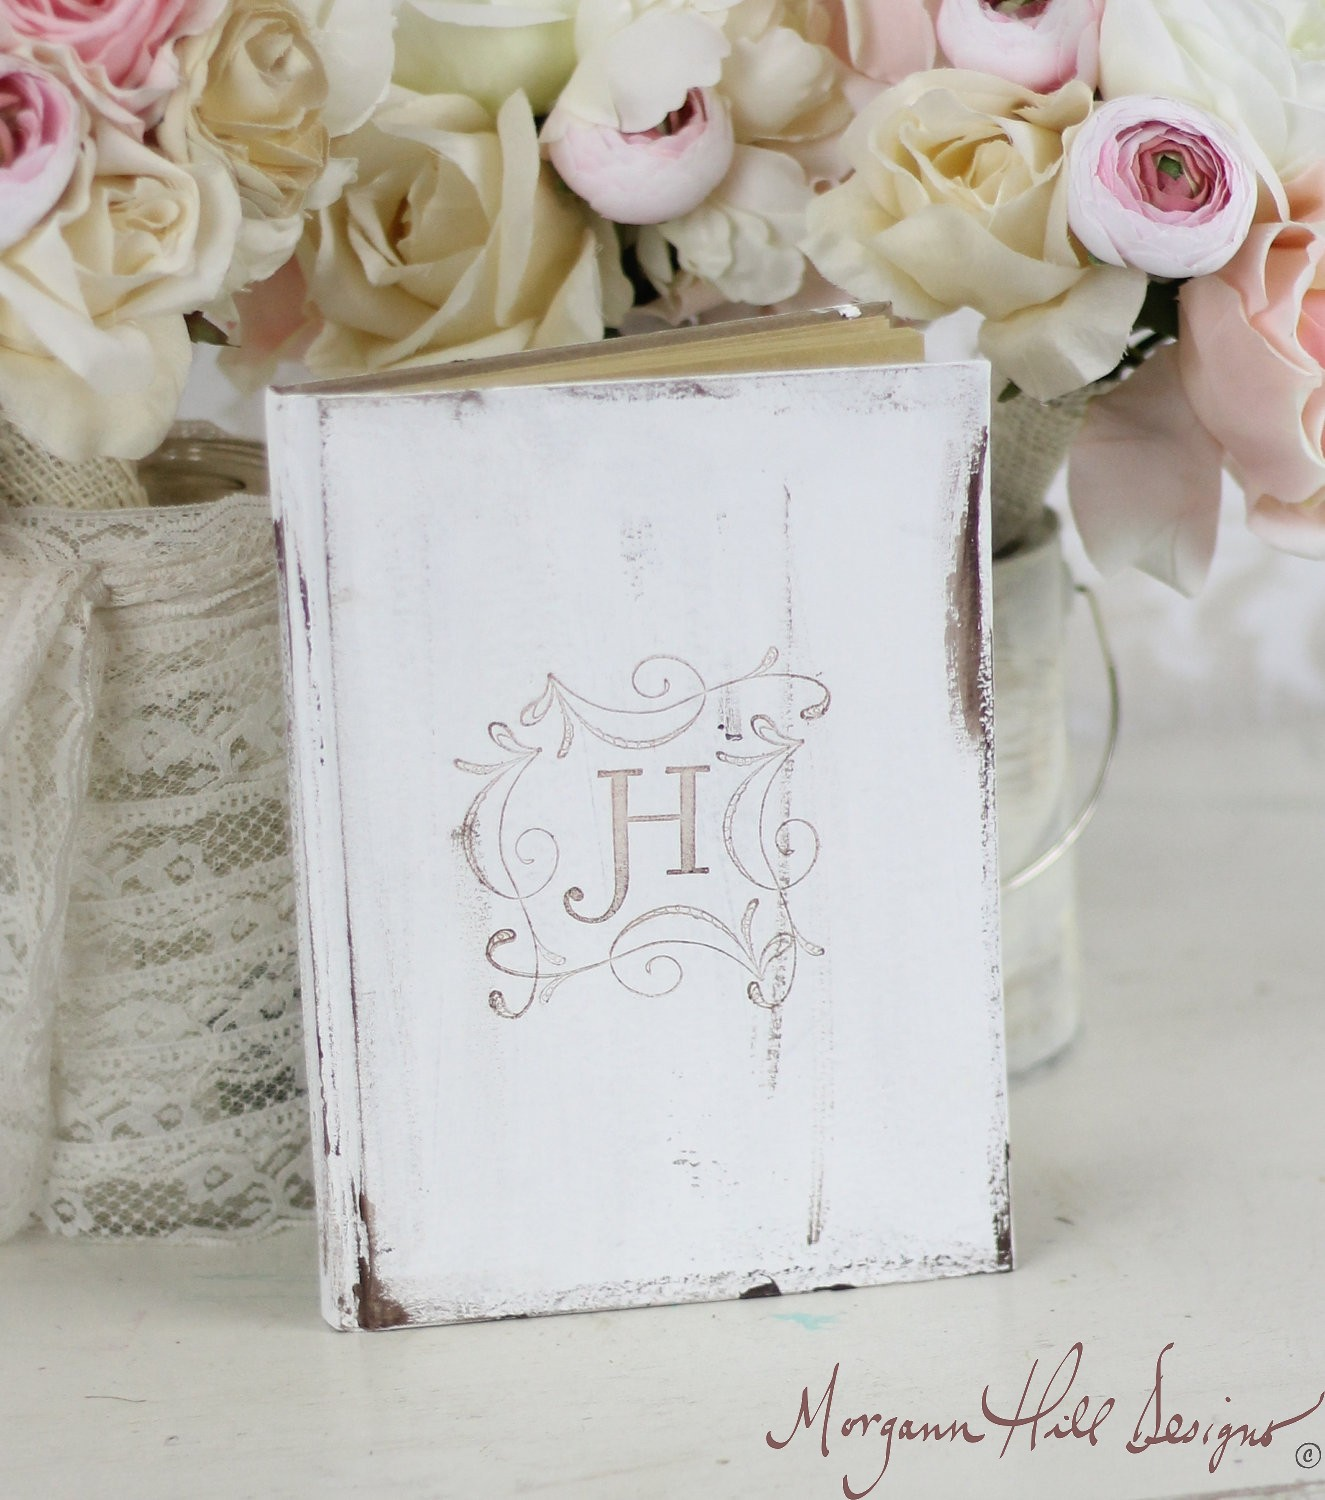 Morgann Hill Designs: Bridal Shower Rustic Guest Book Shabby Chic ...